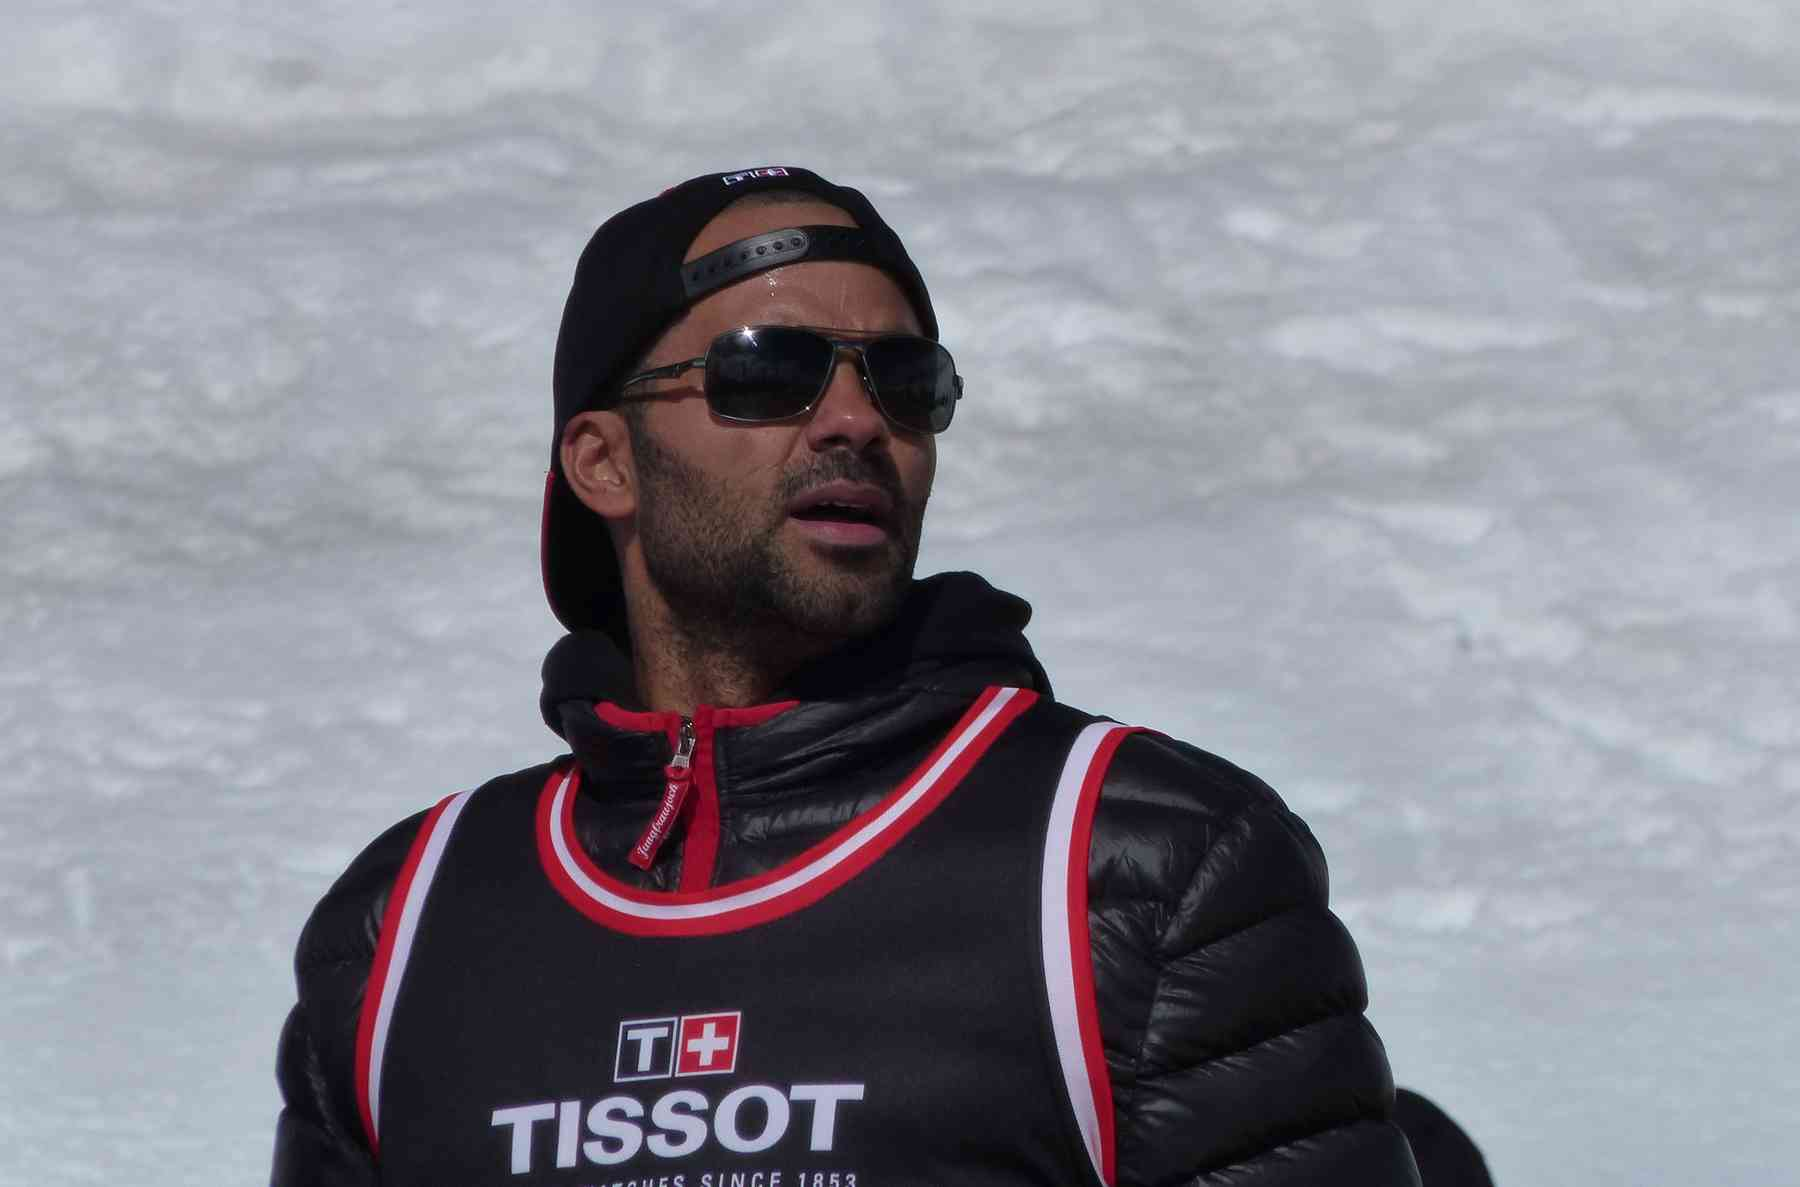 Tissot brand ambassador Tony Parker at Jungfraujoch, the top of Europe